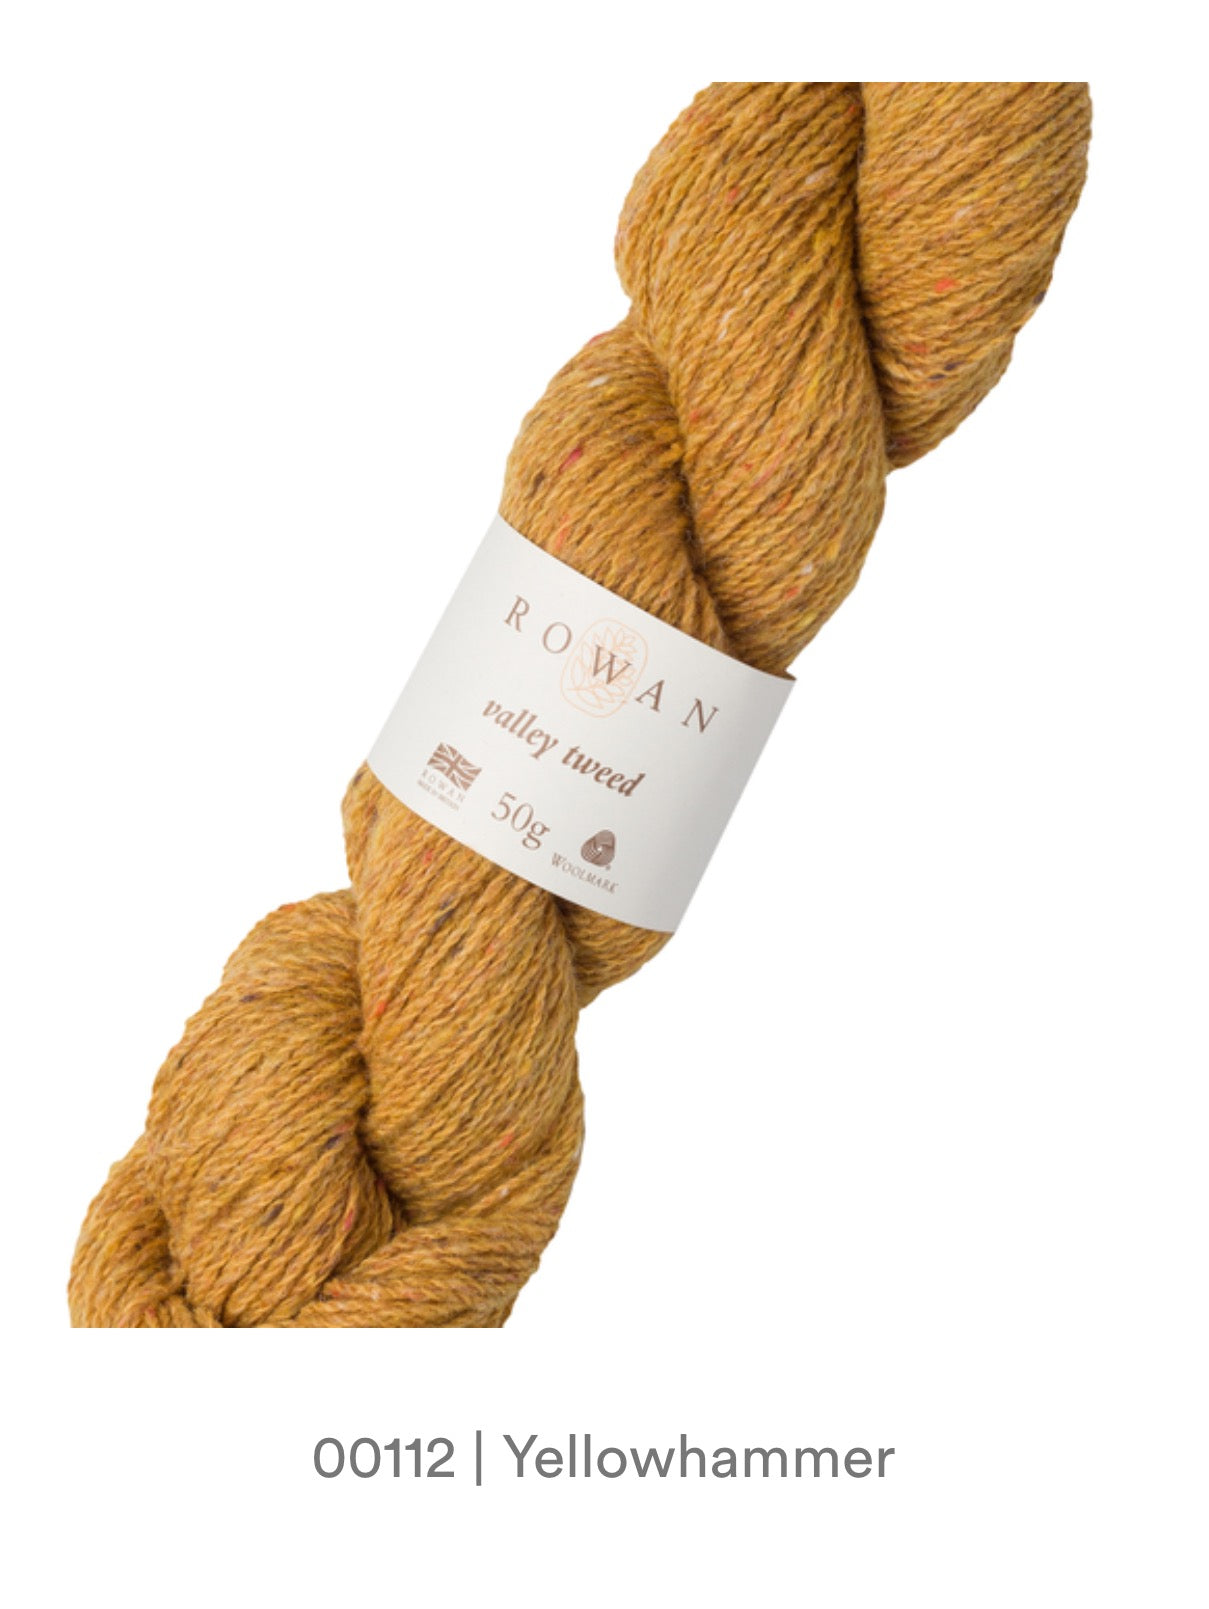 Rowan Valley Tweed 4Ply